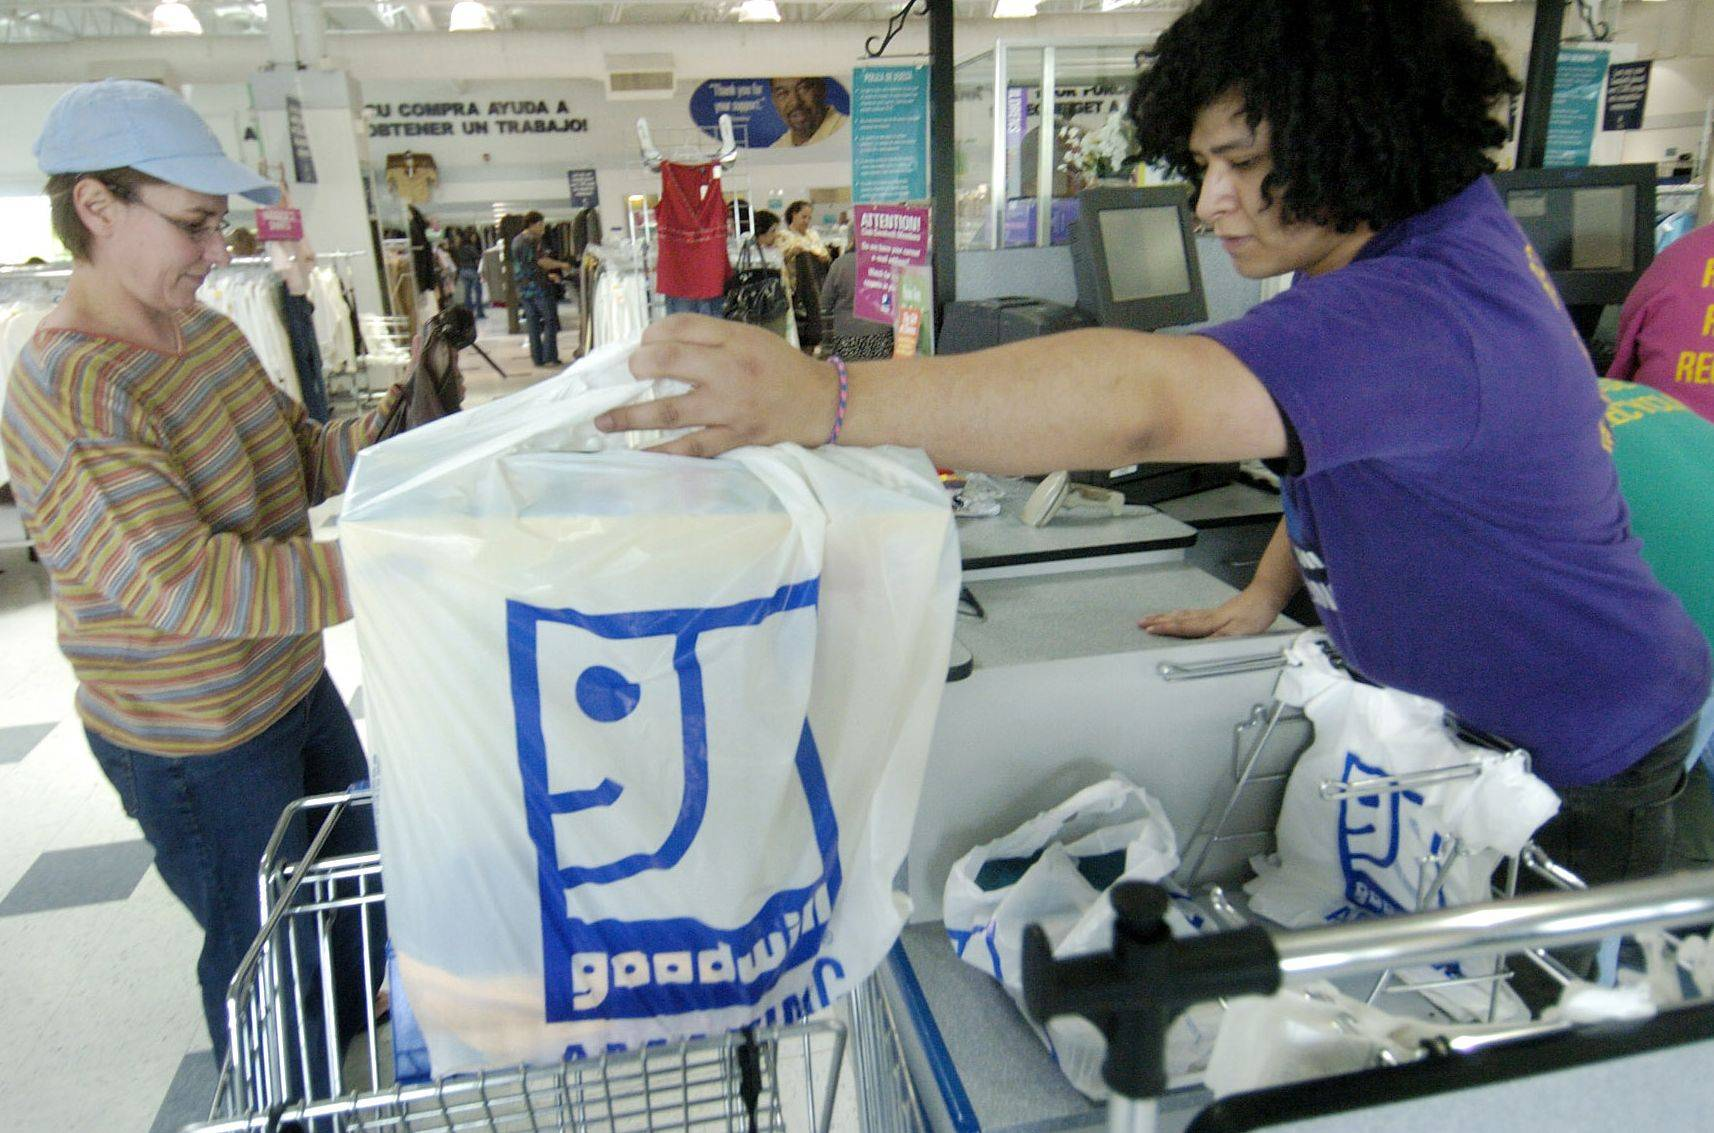 Tracee Breen, of Tower Lakes, pays cashier Pedro Rivera at the Goodwill store in Mundelein. A Goodwill retail store and donation center is to open in the Hoffman Village Shopping Center, near Barrington and Golf roads.